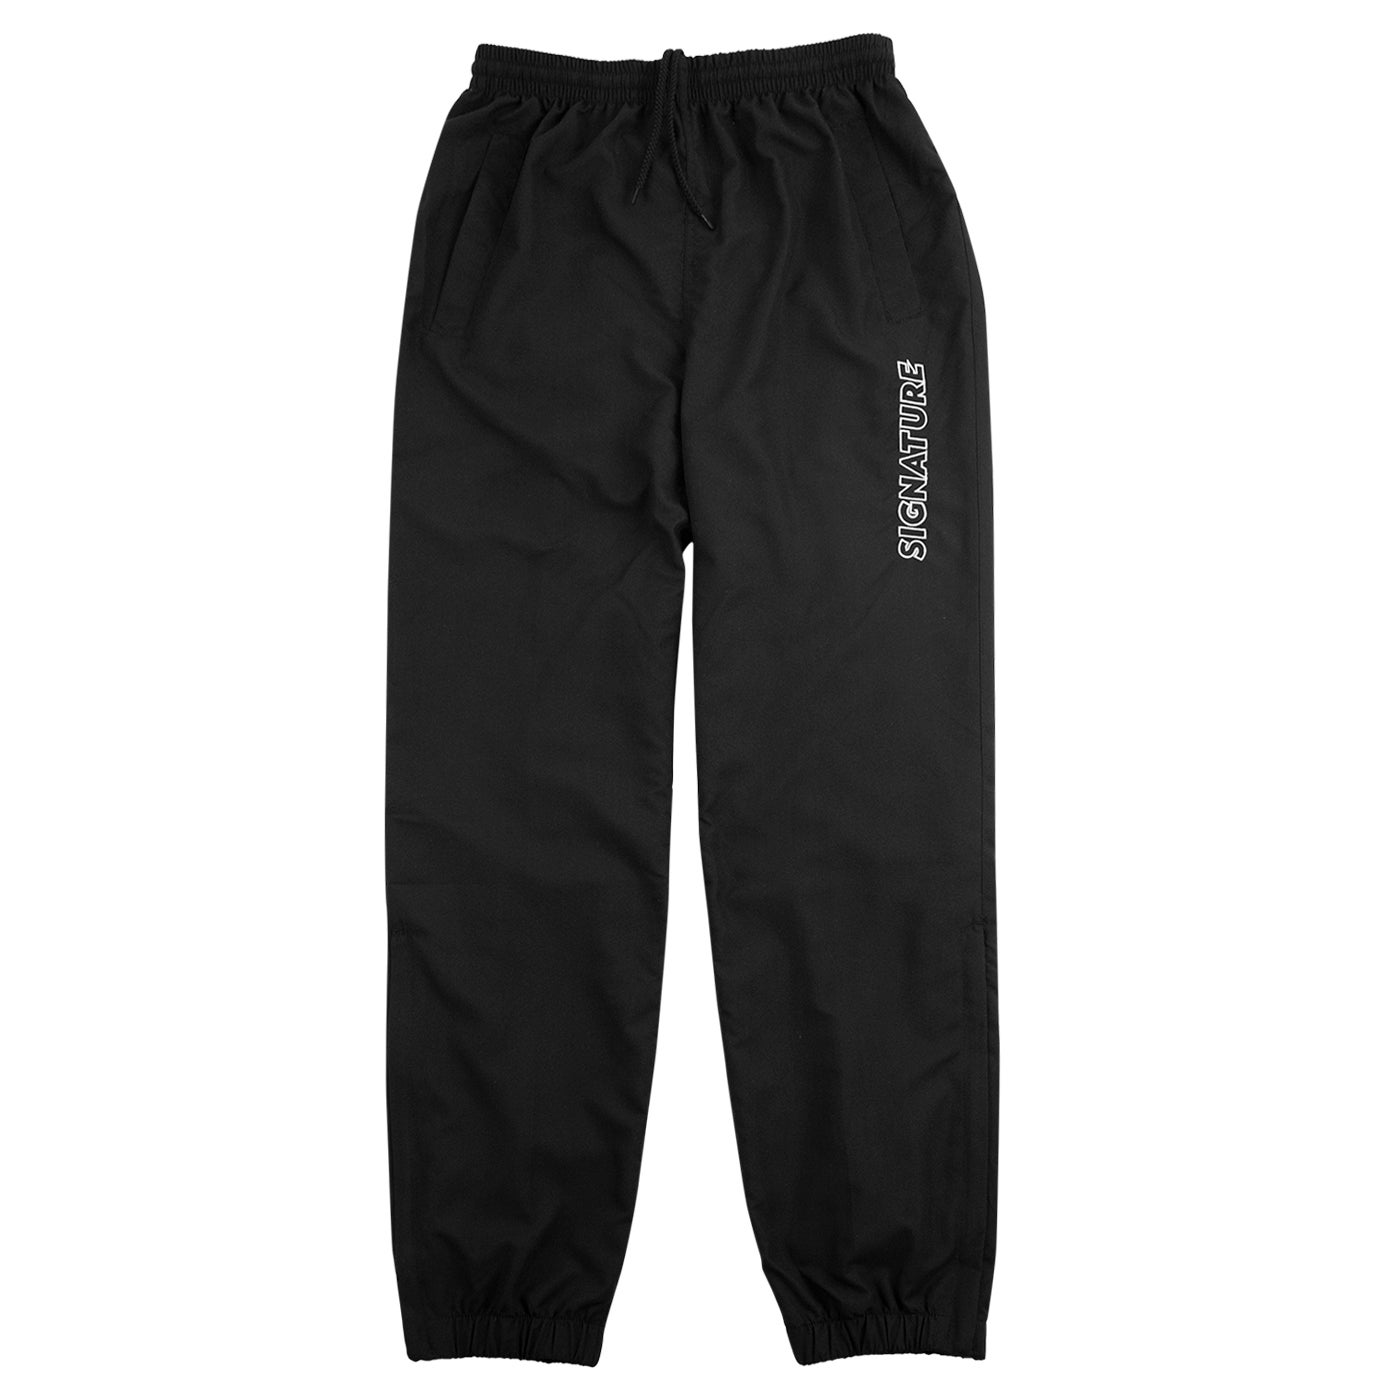 Image of OUTLINE LOGO EMBROIDERED TRACKSUIT PANTS - BLACK / WHITE